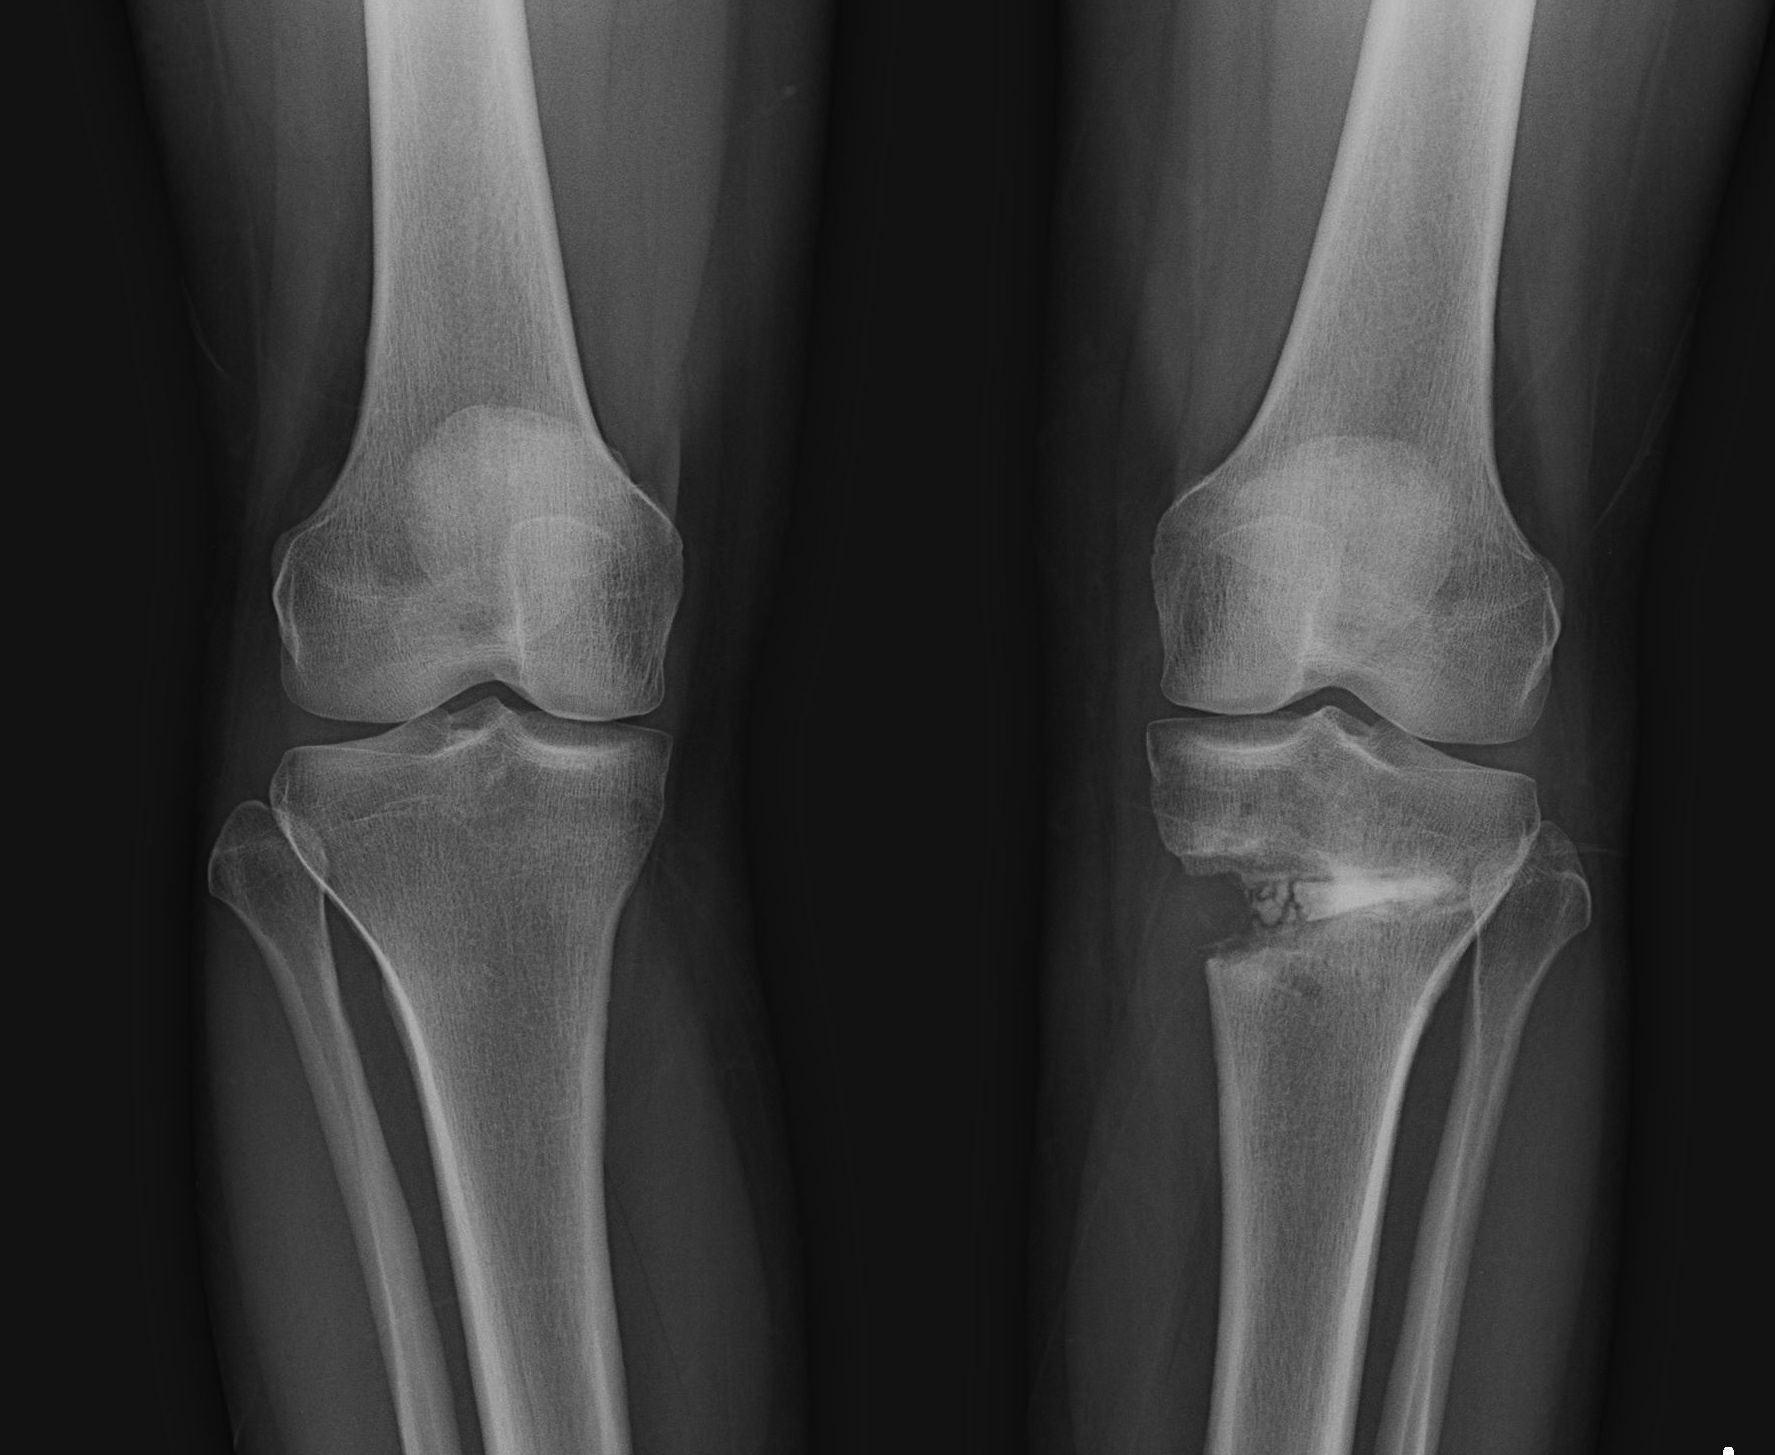 High tibial osteotomy physical therapy - Three Months After First Surgery Some Bone Regrowth Visible On Outside Of Tibia Fuzzy White